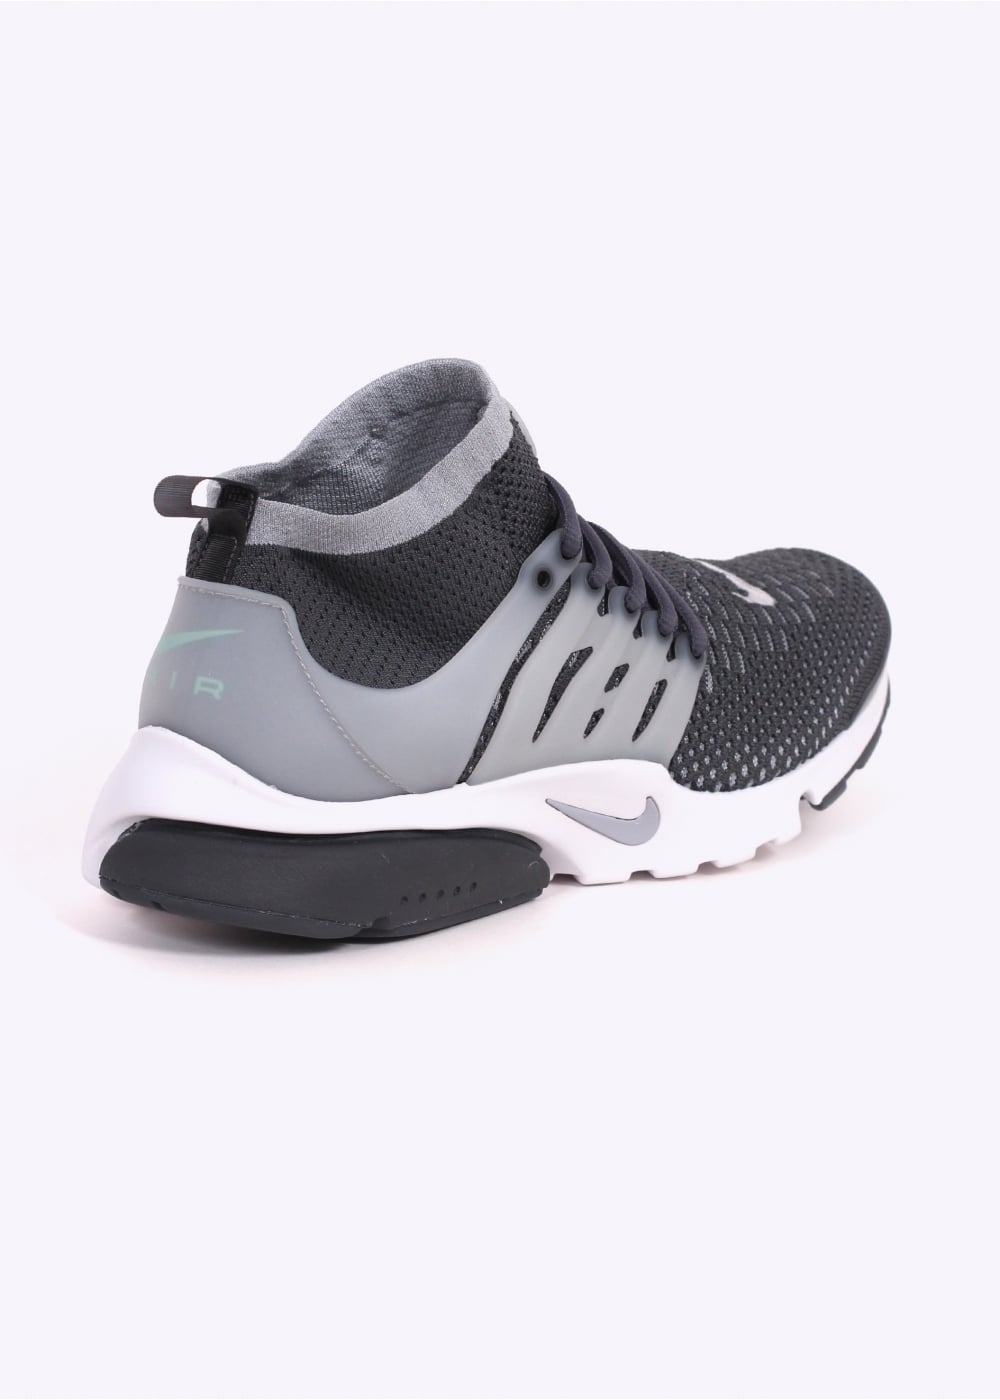 4ad49aa89802 Nike Footwear Air Presto Ultra Flyknit - Dark Grey   Grey - Trainers ...